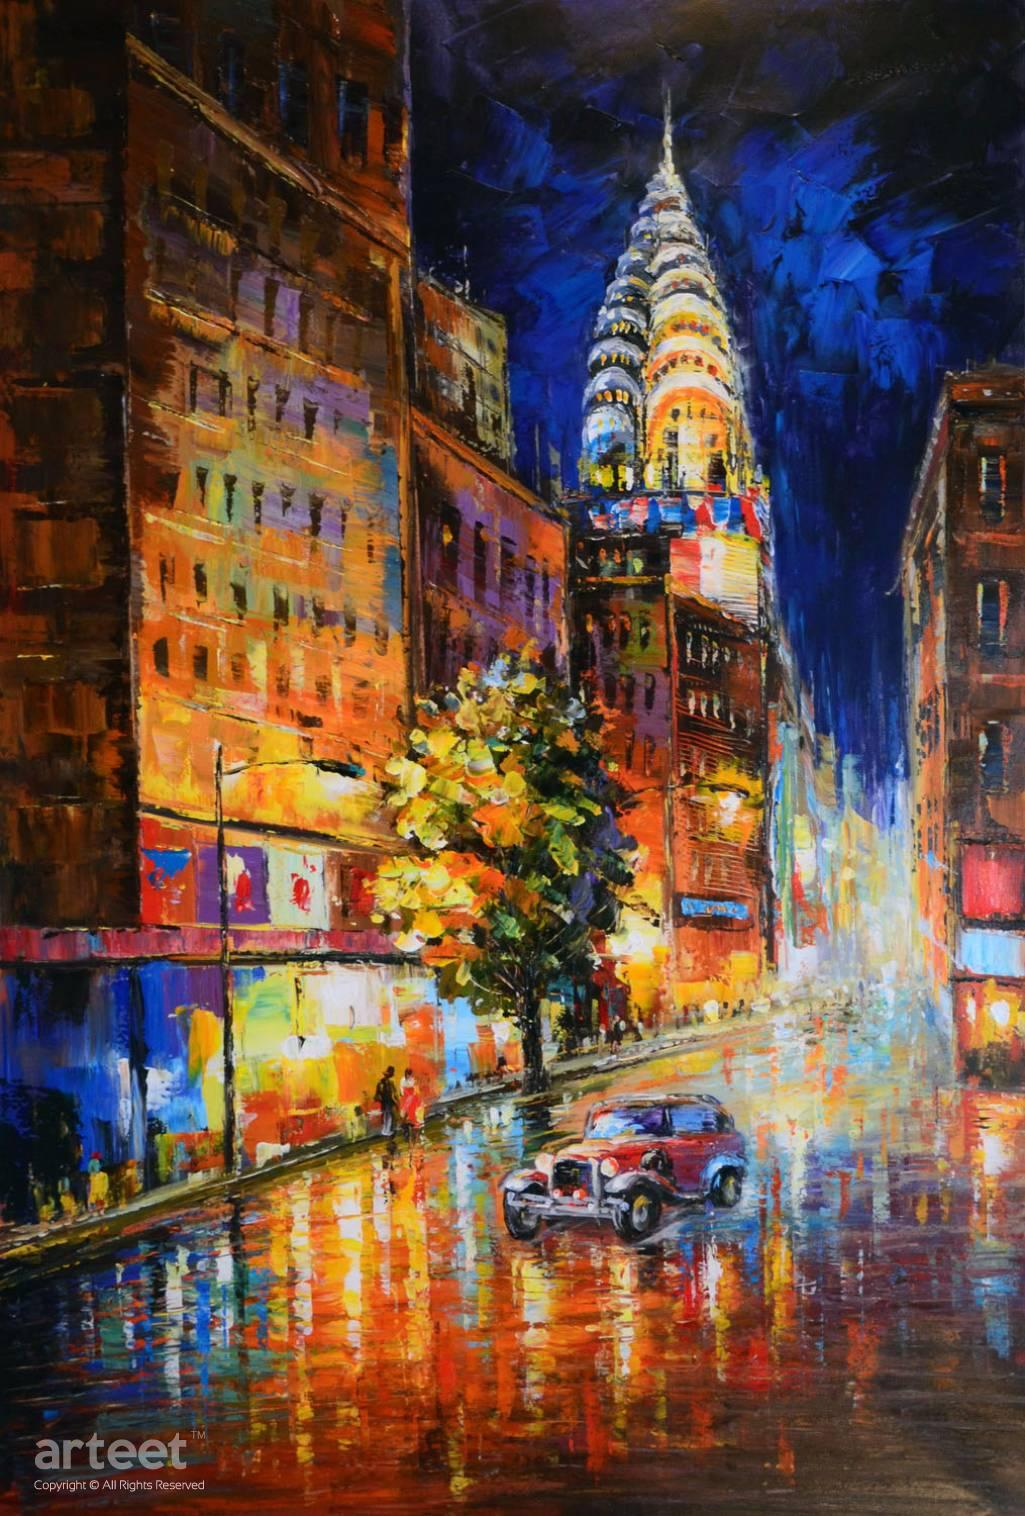 new york heartbeat art paintings for sale online gallery. Black Bedroom Furniture Sets. Home Design Ideas